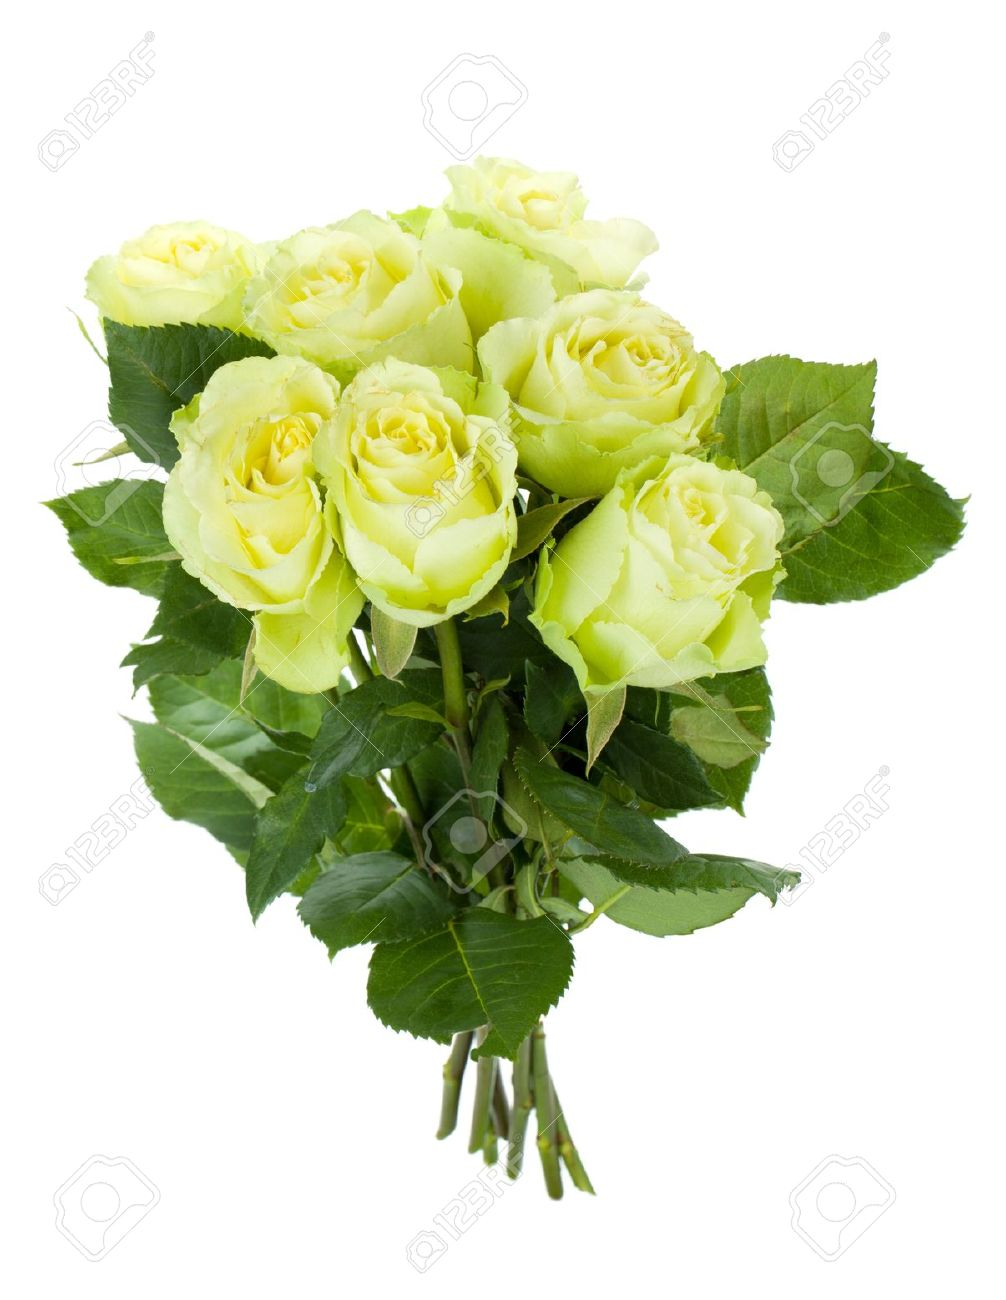 Green Roses Bouquet Isolated On White Background Stock Photo Picture And Royalty Free Image Image 12448437